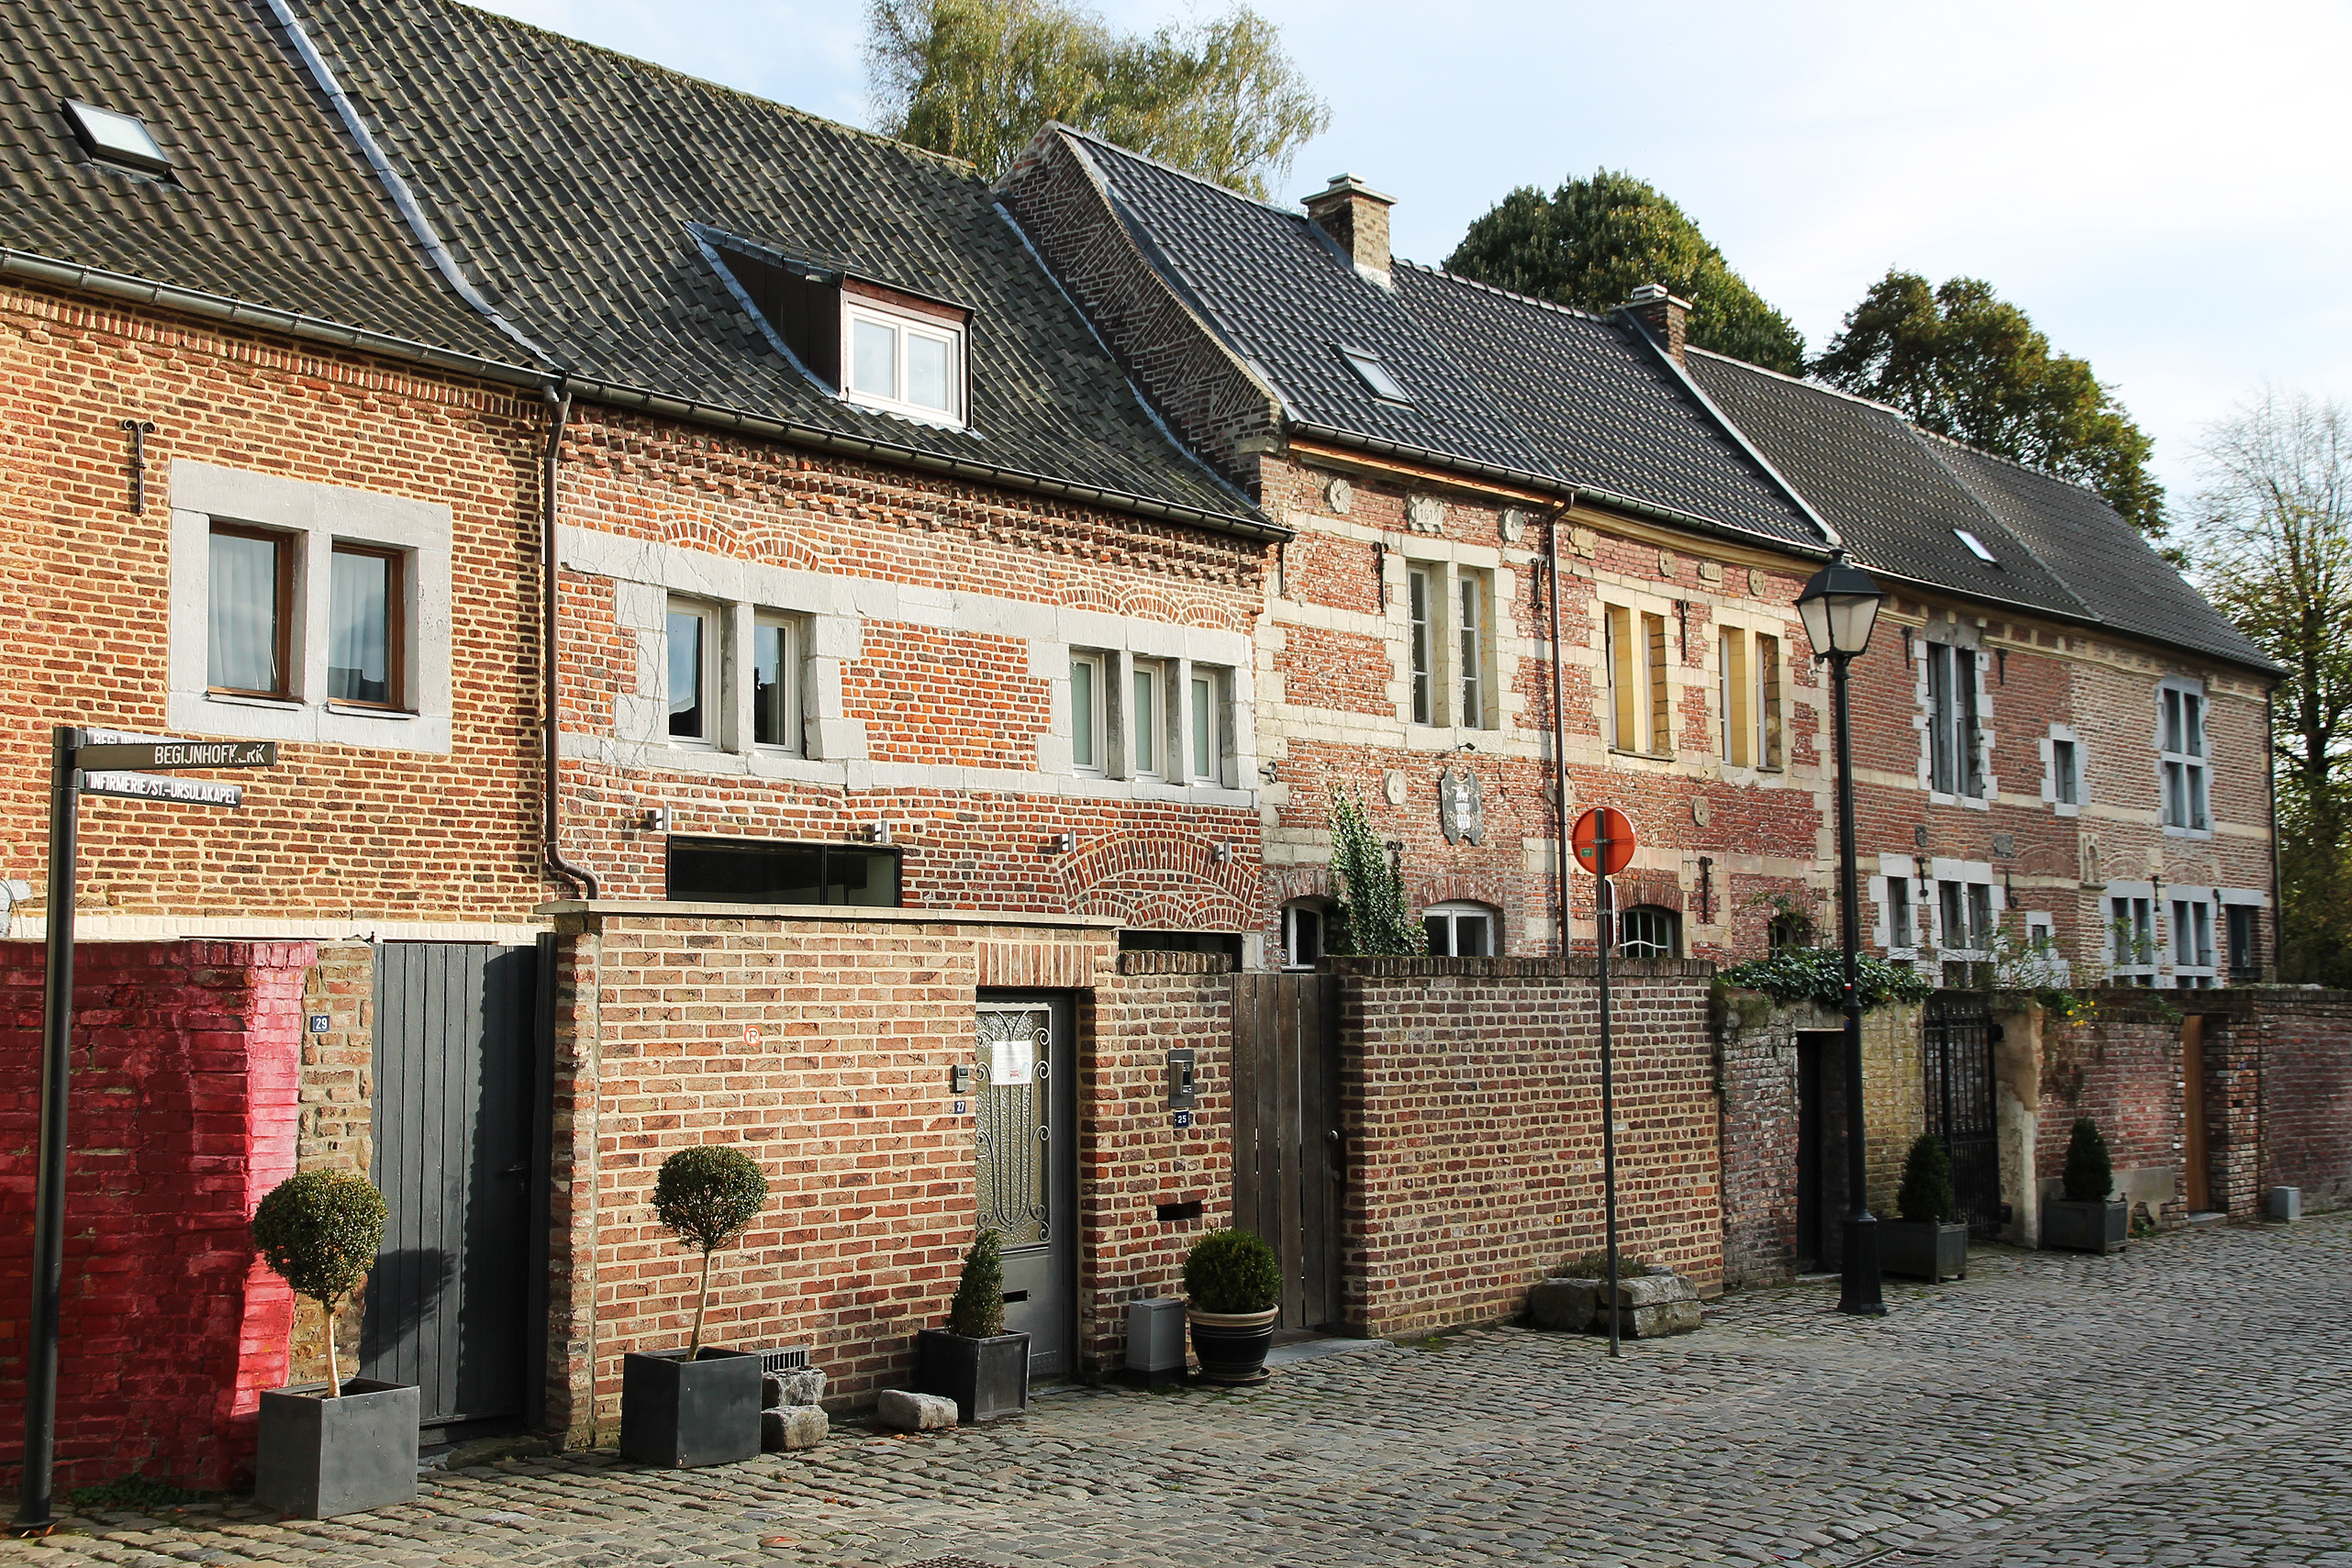 The 13th-century béguinage of Tongeren is a village within a city: it is no longer surrounded by an enclosure wall.